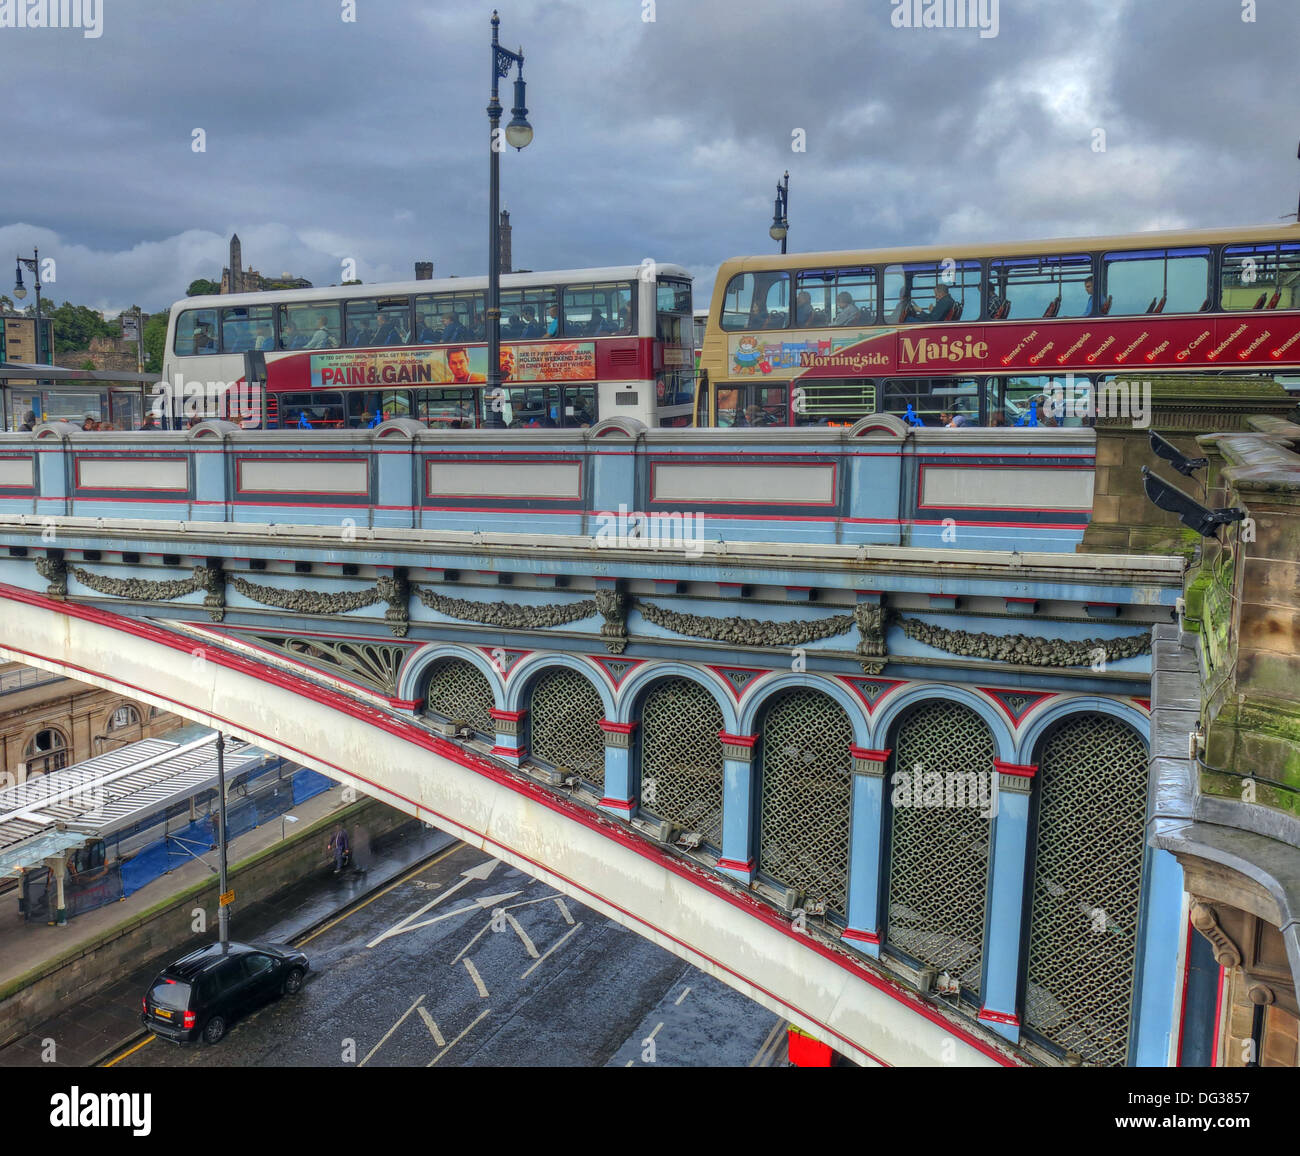 Scotland,UK,EH1,colourfull,hidden,secret,scots,capital,city,for,tourist,northbridge,southbridge,bridges,transport,links,link,old,new,town,span,moody,sky,gotonysmith,Buy Pictures of,Buy Images Of